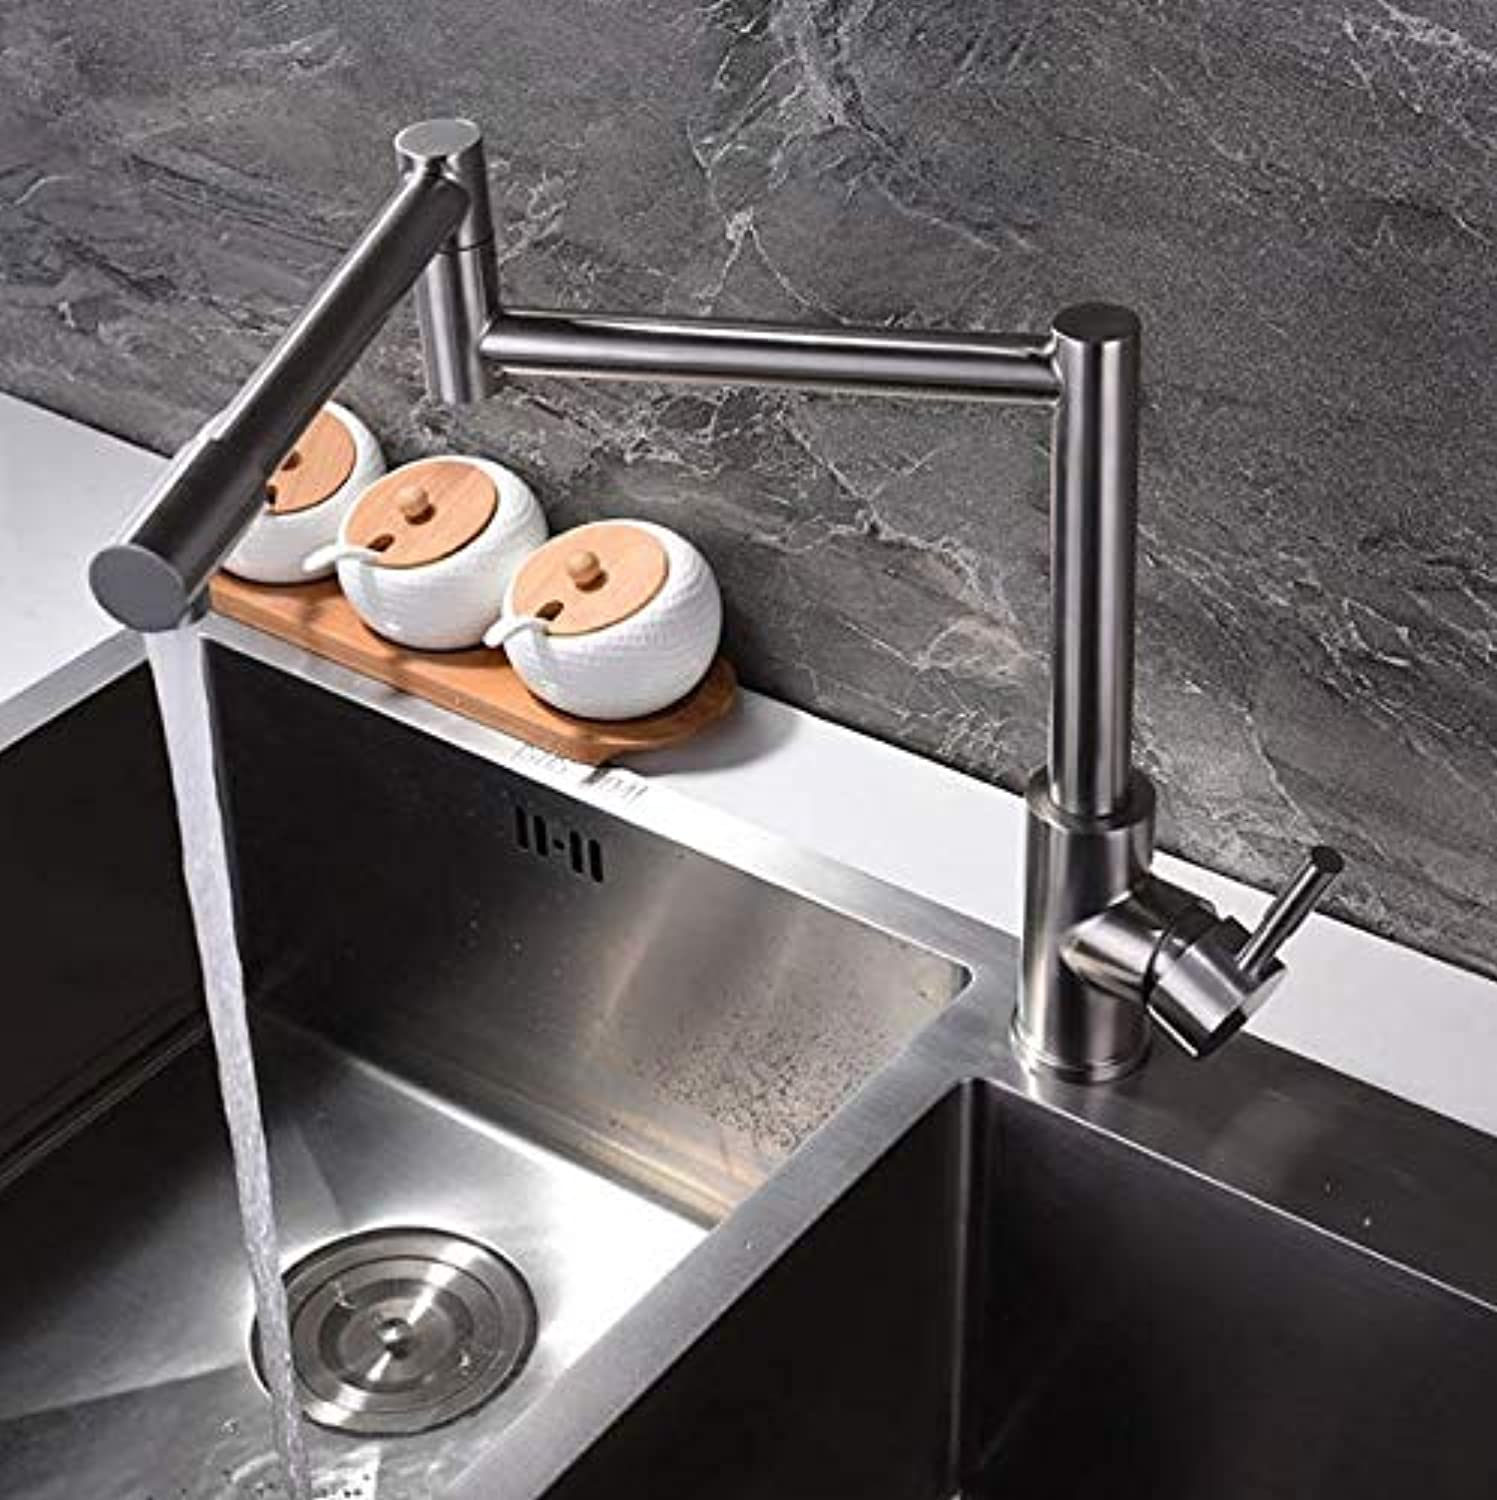 Stainless Steel Brushed hot and Cold Faucet Stainless Steel Kitchen Faucet Universal redating Fashion Style